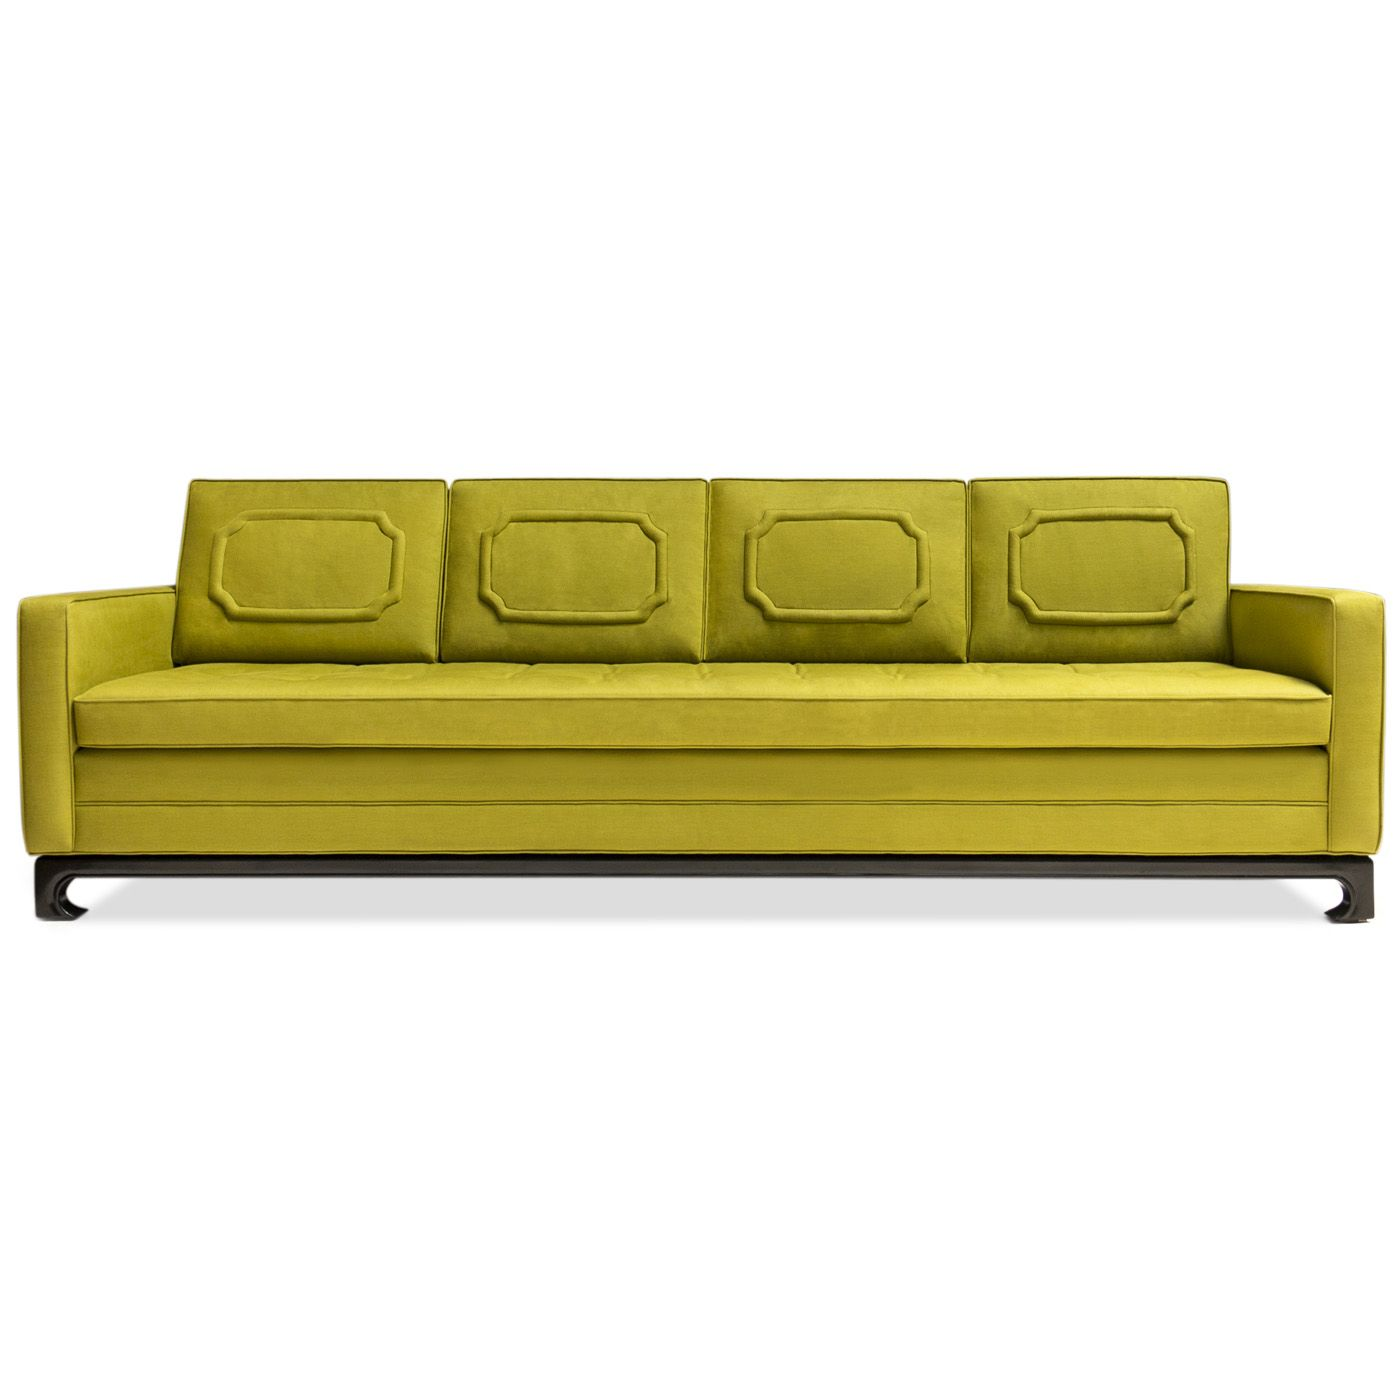 Jonathan Adler Peking Sofa In Living Room It S All About The Details Furniture